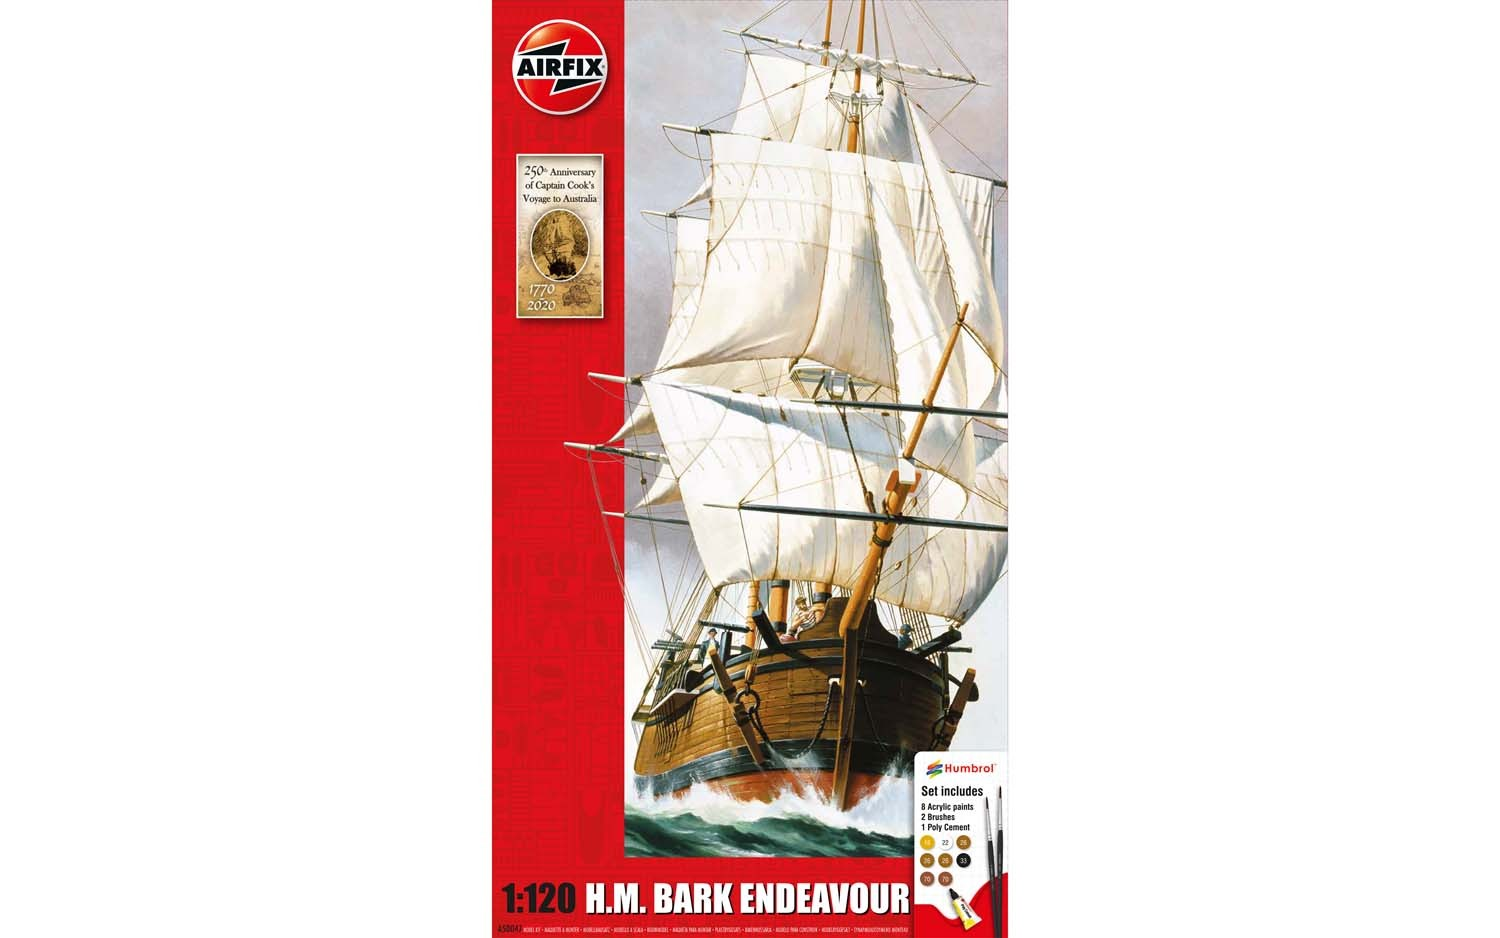 Endeavour Bark and Captain Cook 250th anniversary